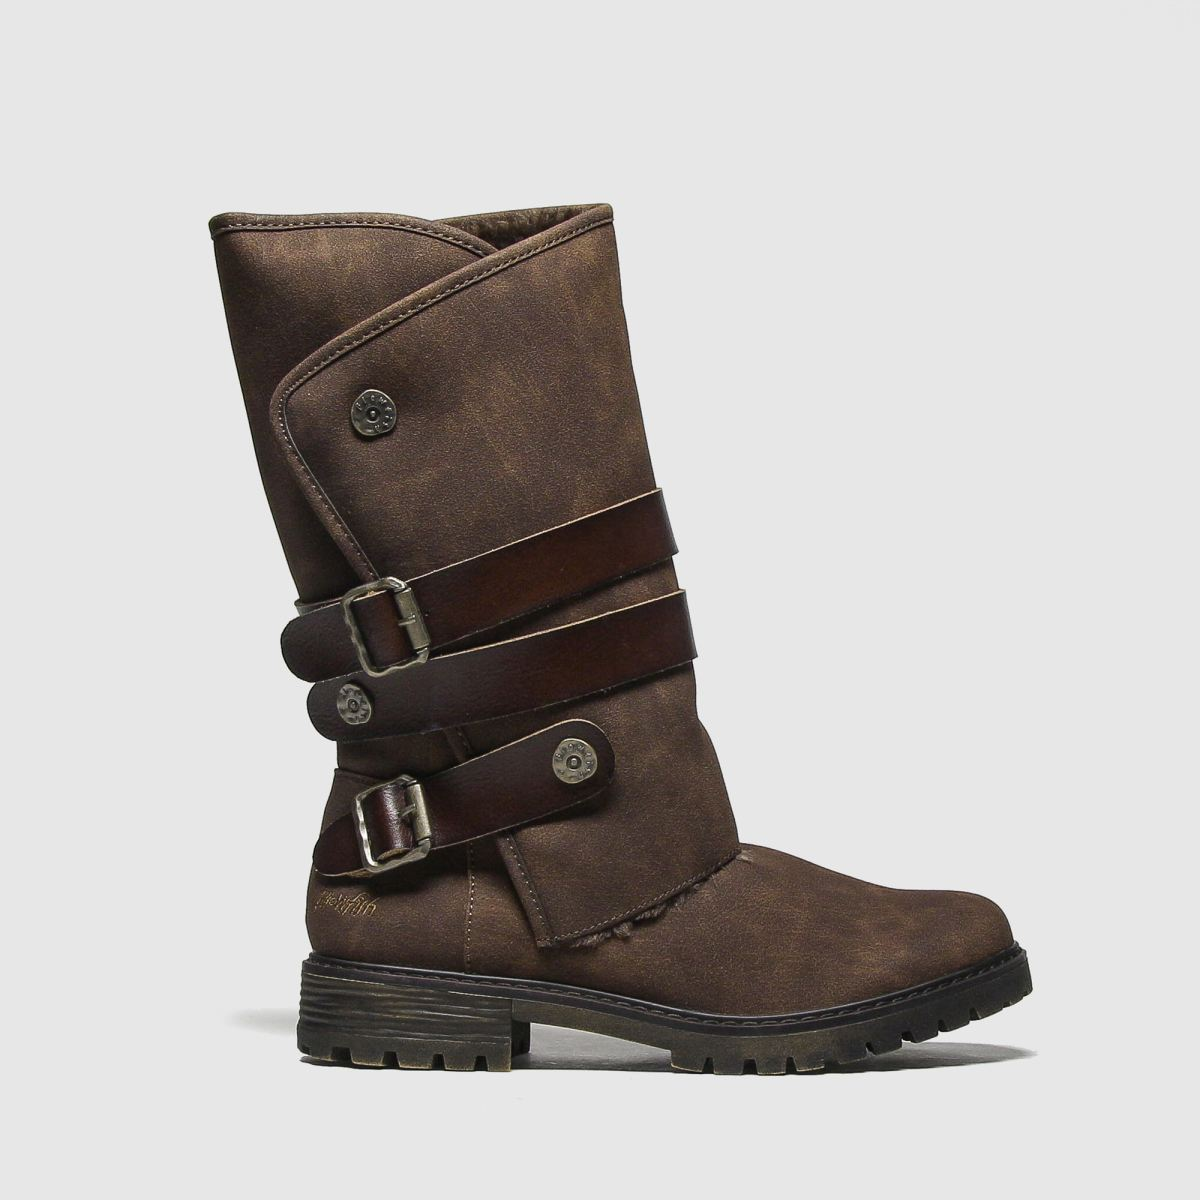 Blowfish Blowfish Brown Rider Shearling Boots